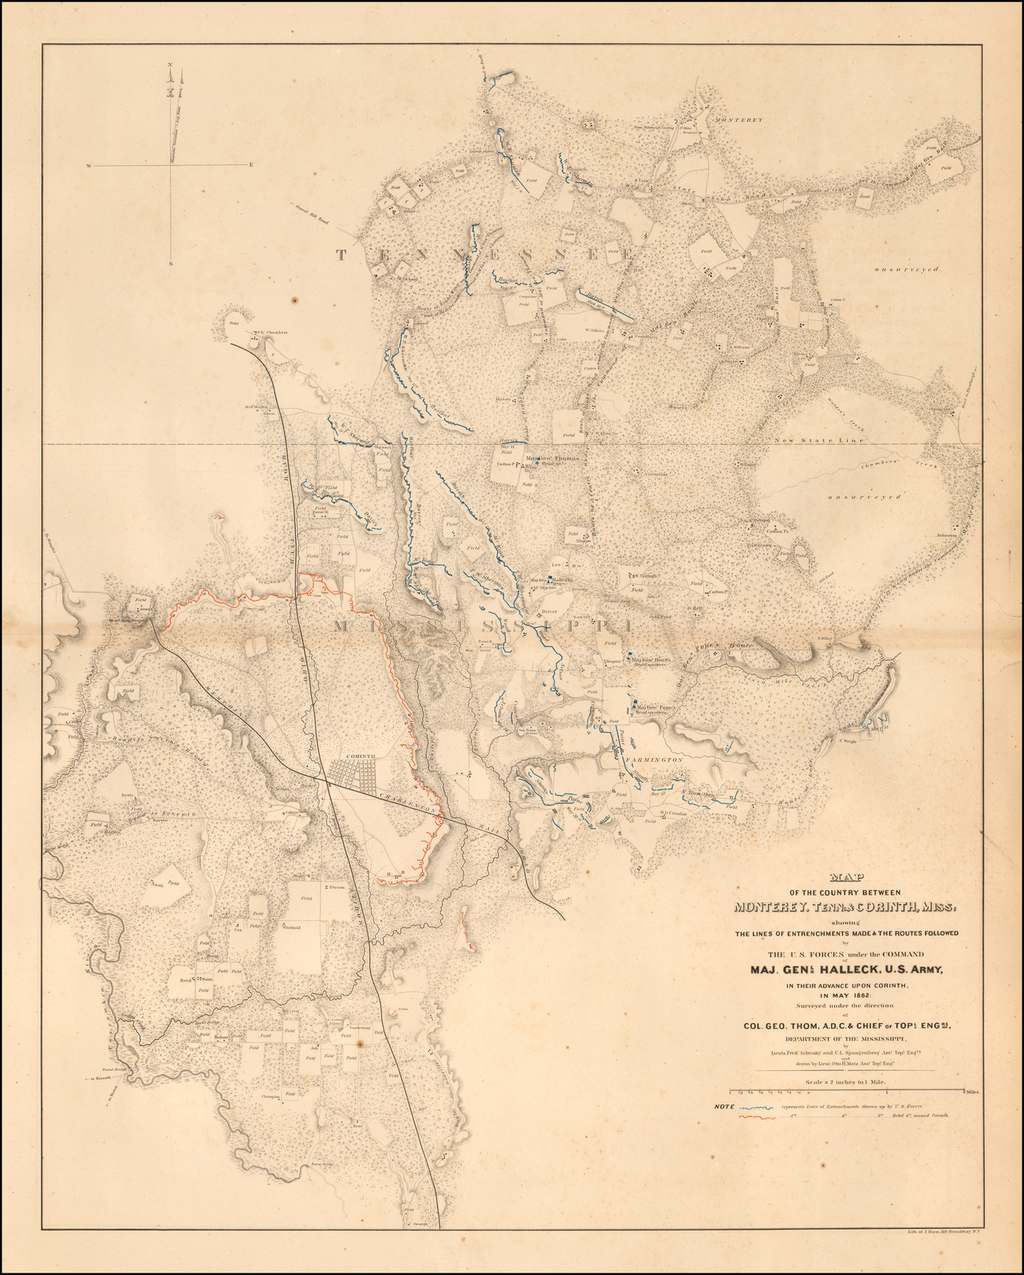 Map of the Country between Monterey, Tenn. & Corinth, Miss; showing The Lines of Entrenchments Made & The Routes Followed by the U.S. Forces under the Command of Maj. Genl. Halleck, U.S. Army, in their advance upon Corinth in May 1862 . . .  By Julius Bien & Co.